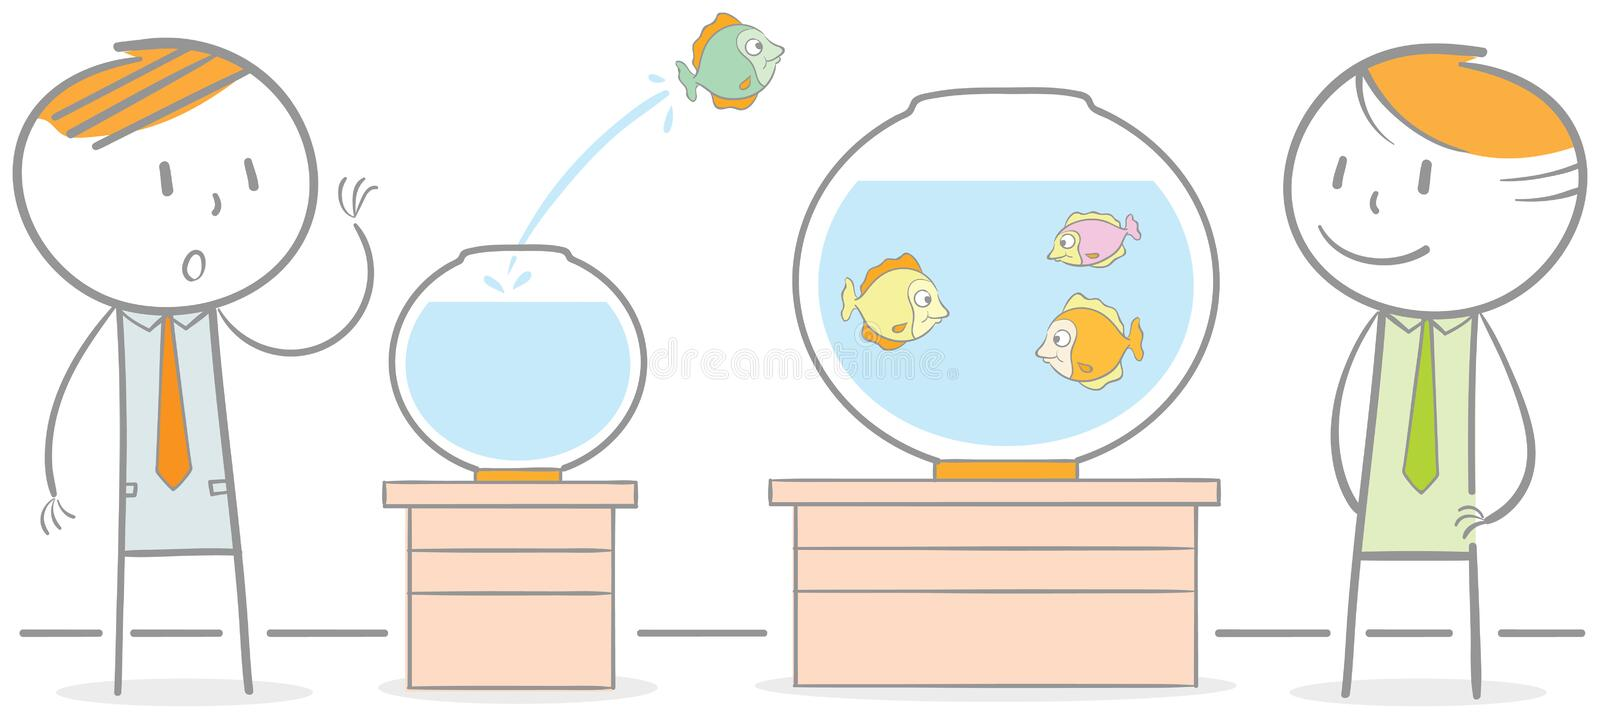 Migration de poissons illustration libre de droits